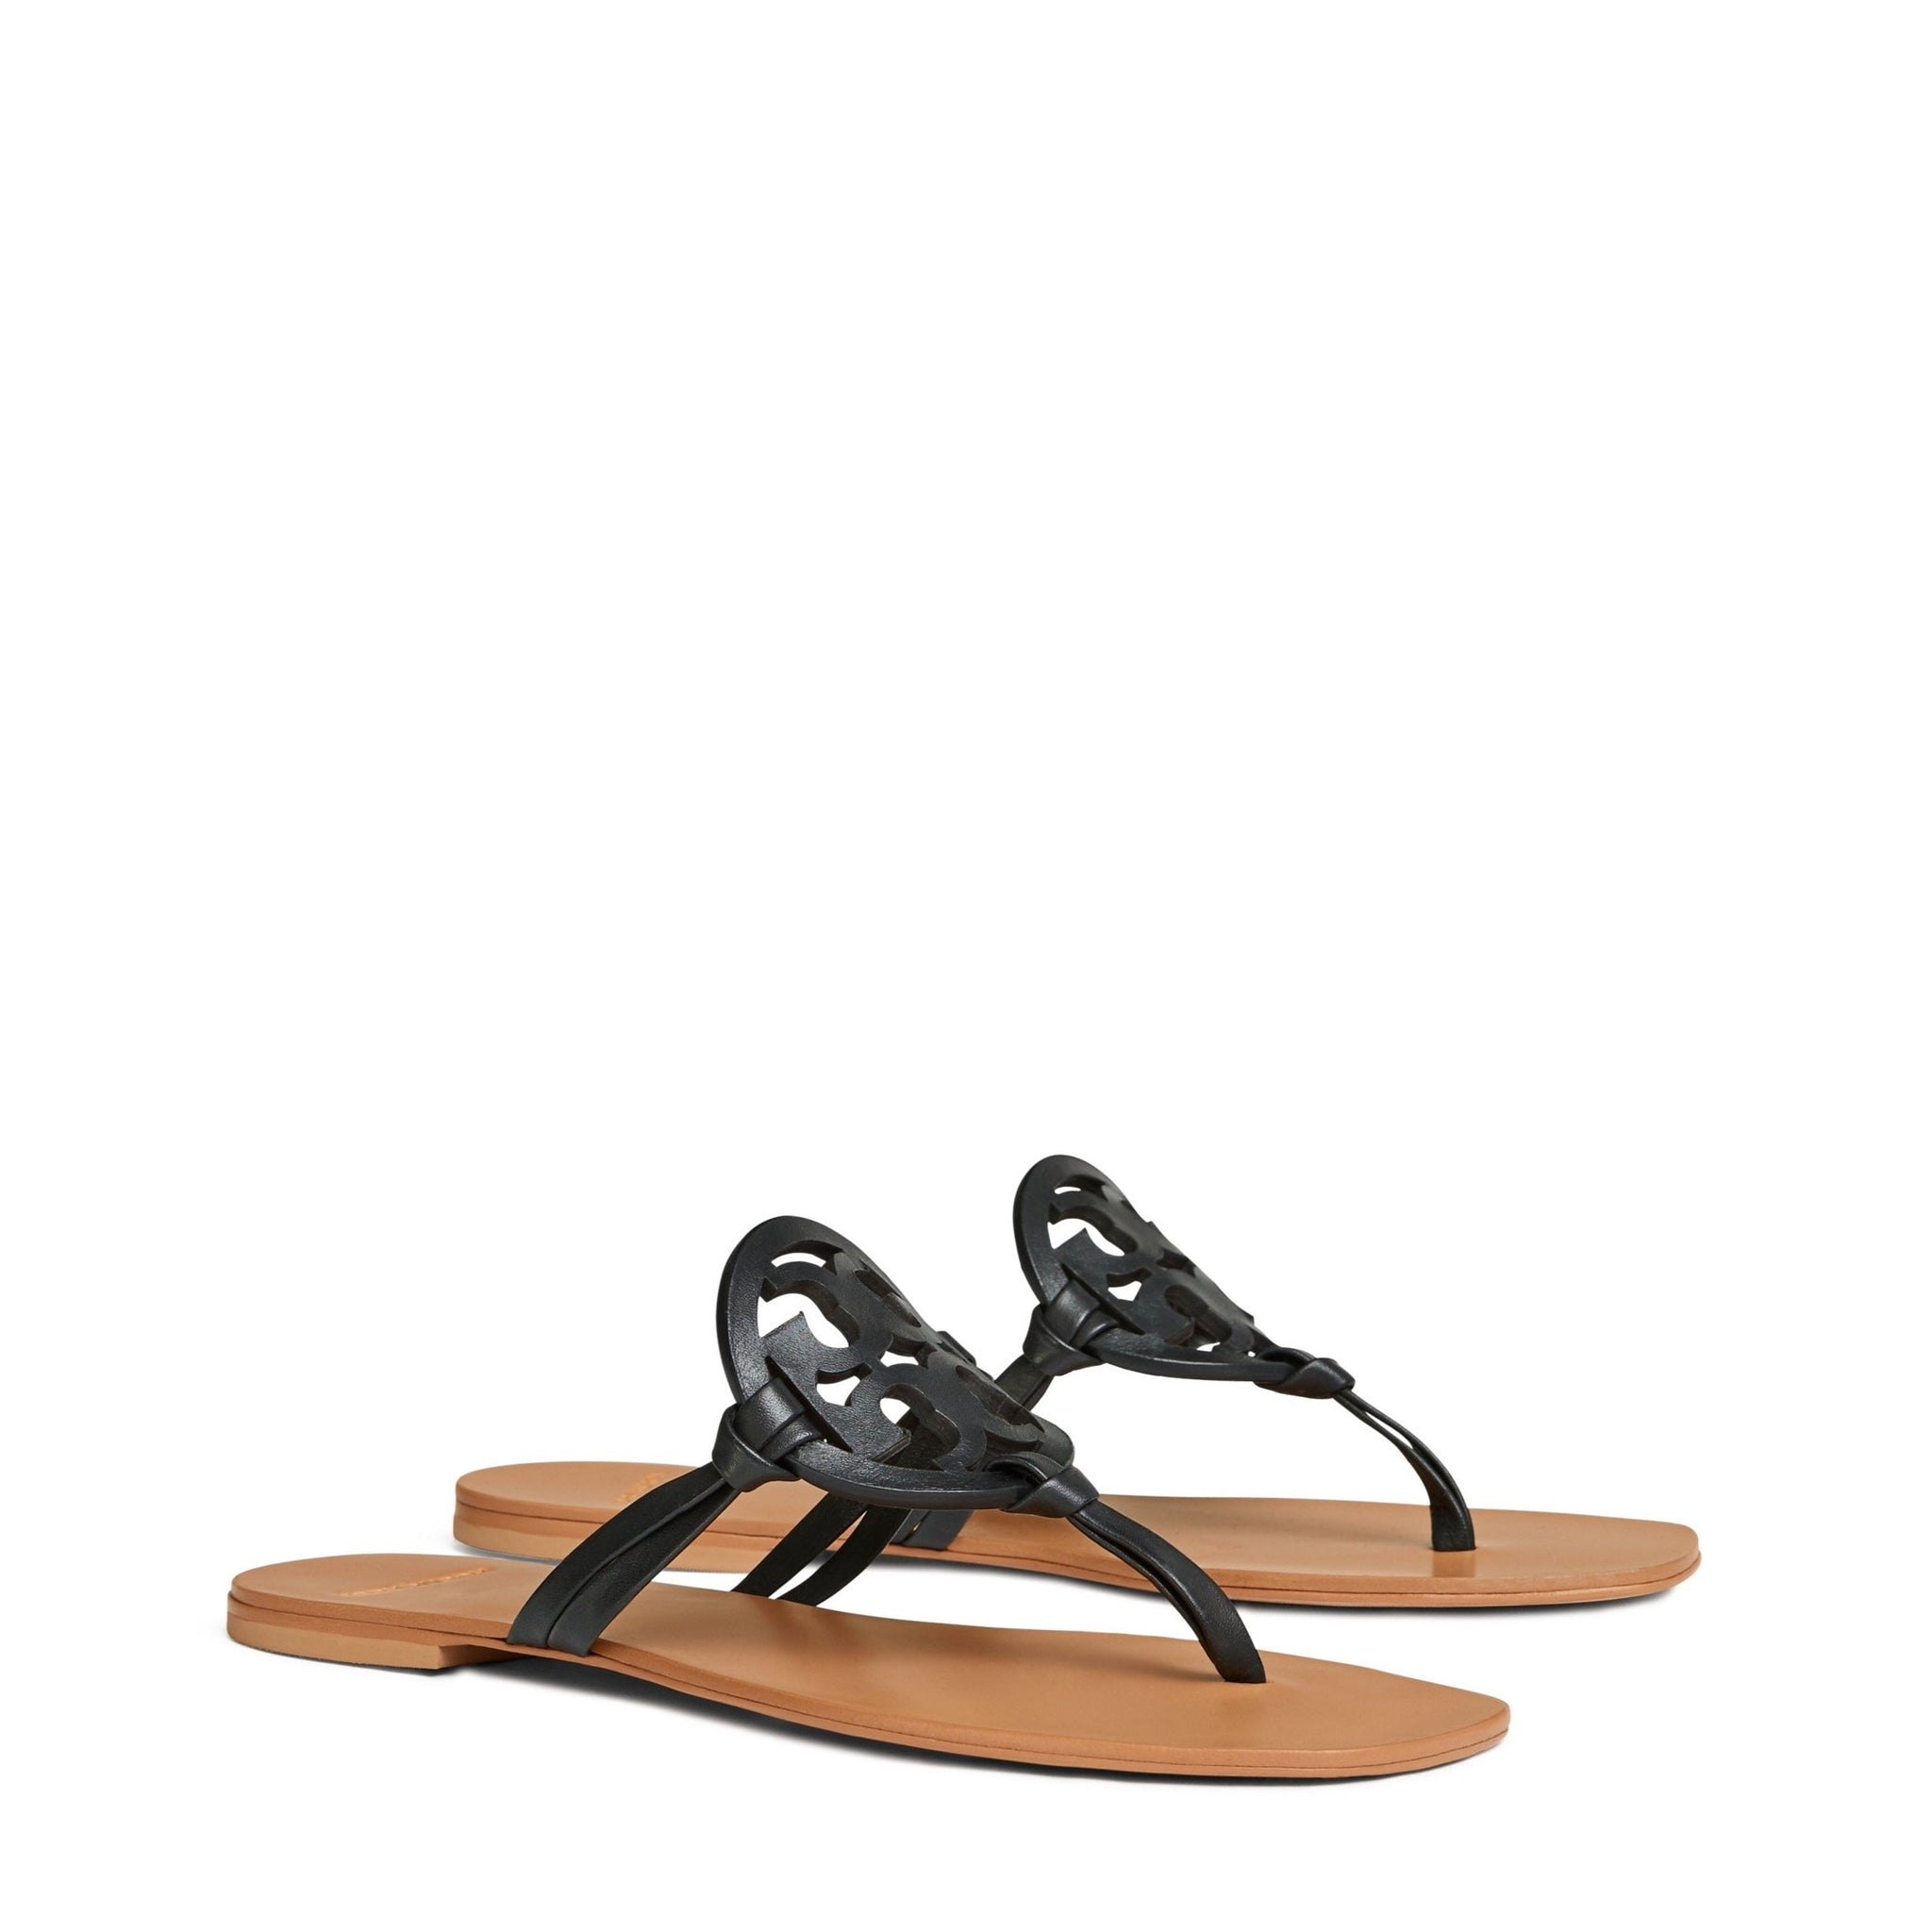 MILLER SANDAL SQUARE TOE - BLACK